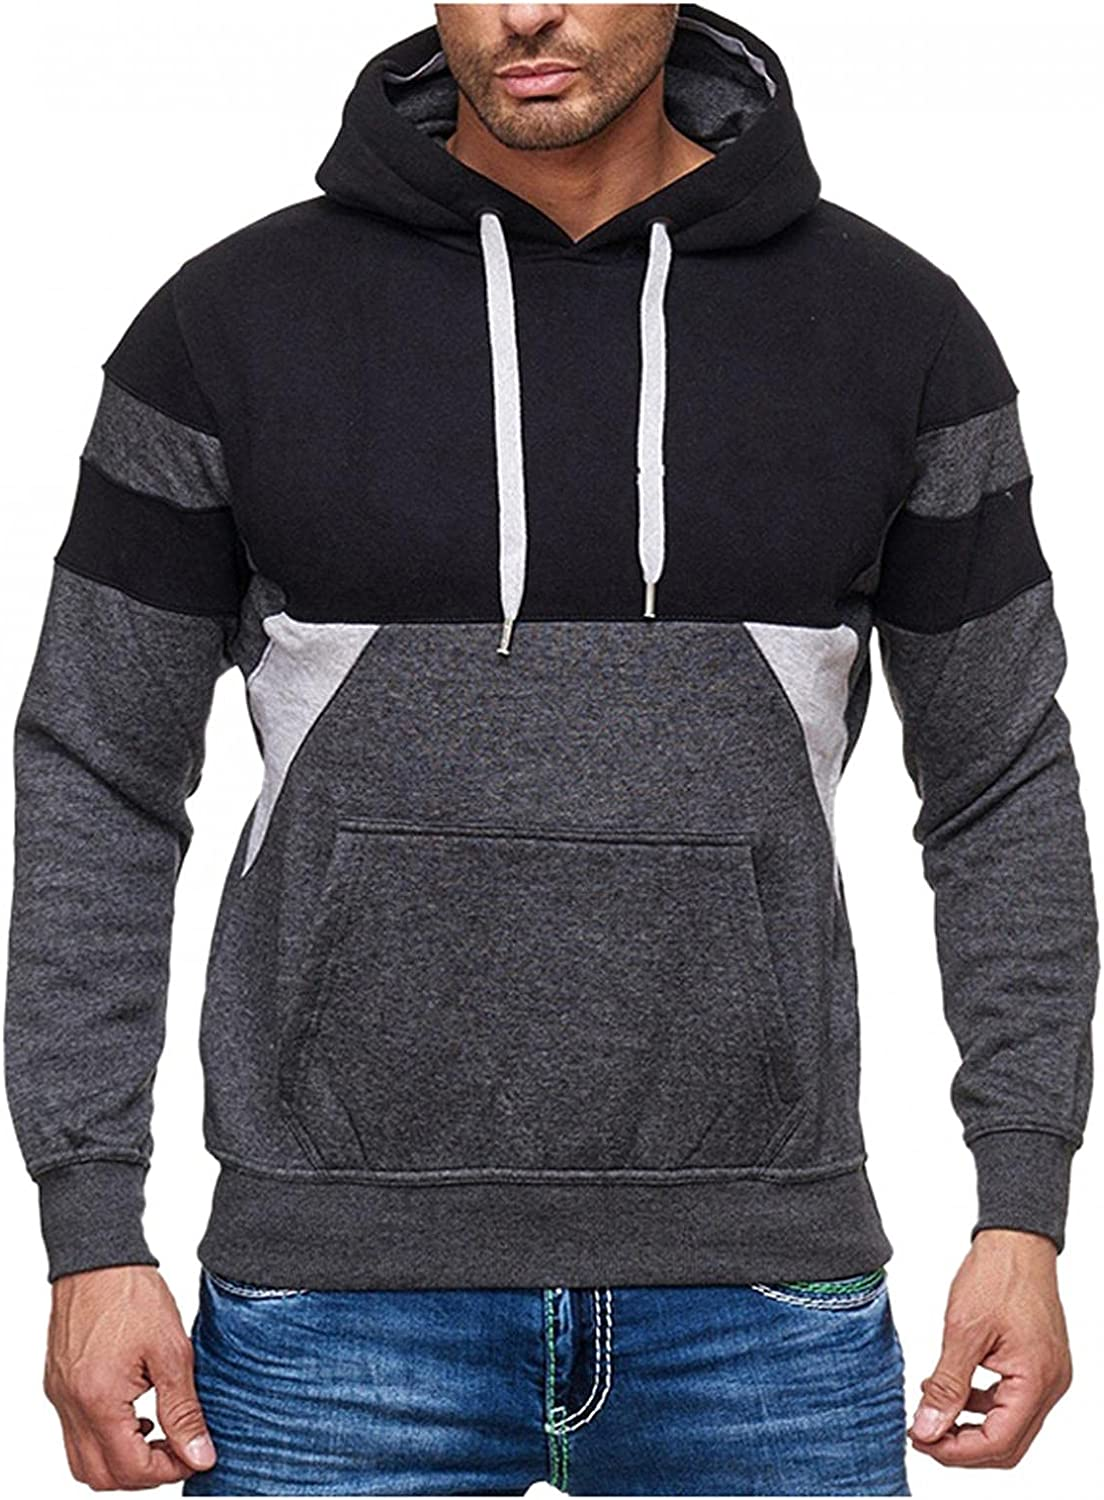 Men's Hoodies Pullover, Mens Autumn Winter Casual Long Sleeve Contrast Color Sports Outwear Hooded Sweatshirts Pockets